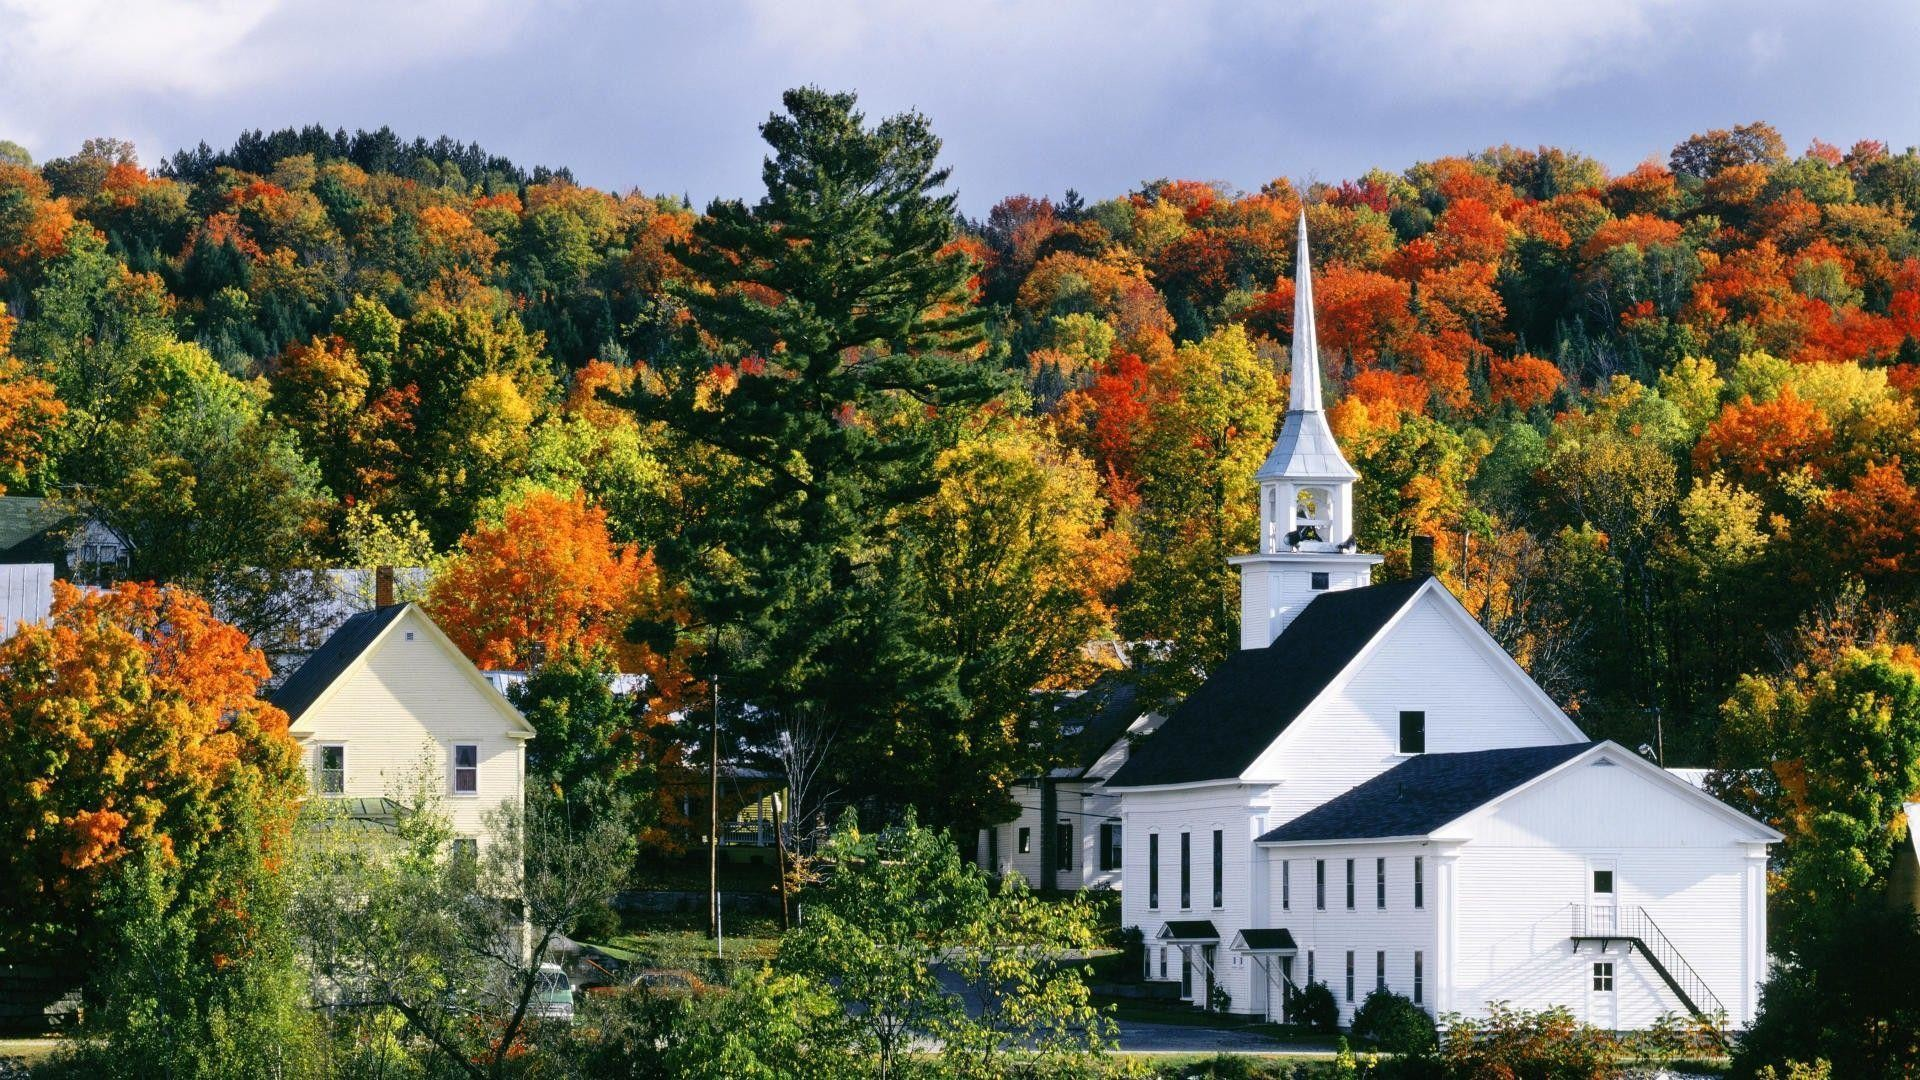 New england wallpaper 52 pictures 1920x1080 autumn in new england vermont 1920x1080 full hd wallpaper voltagebd Image collections